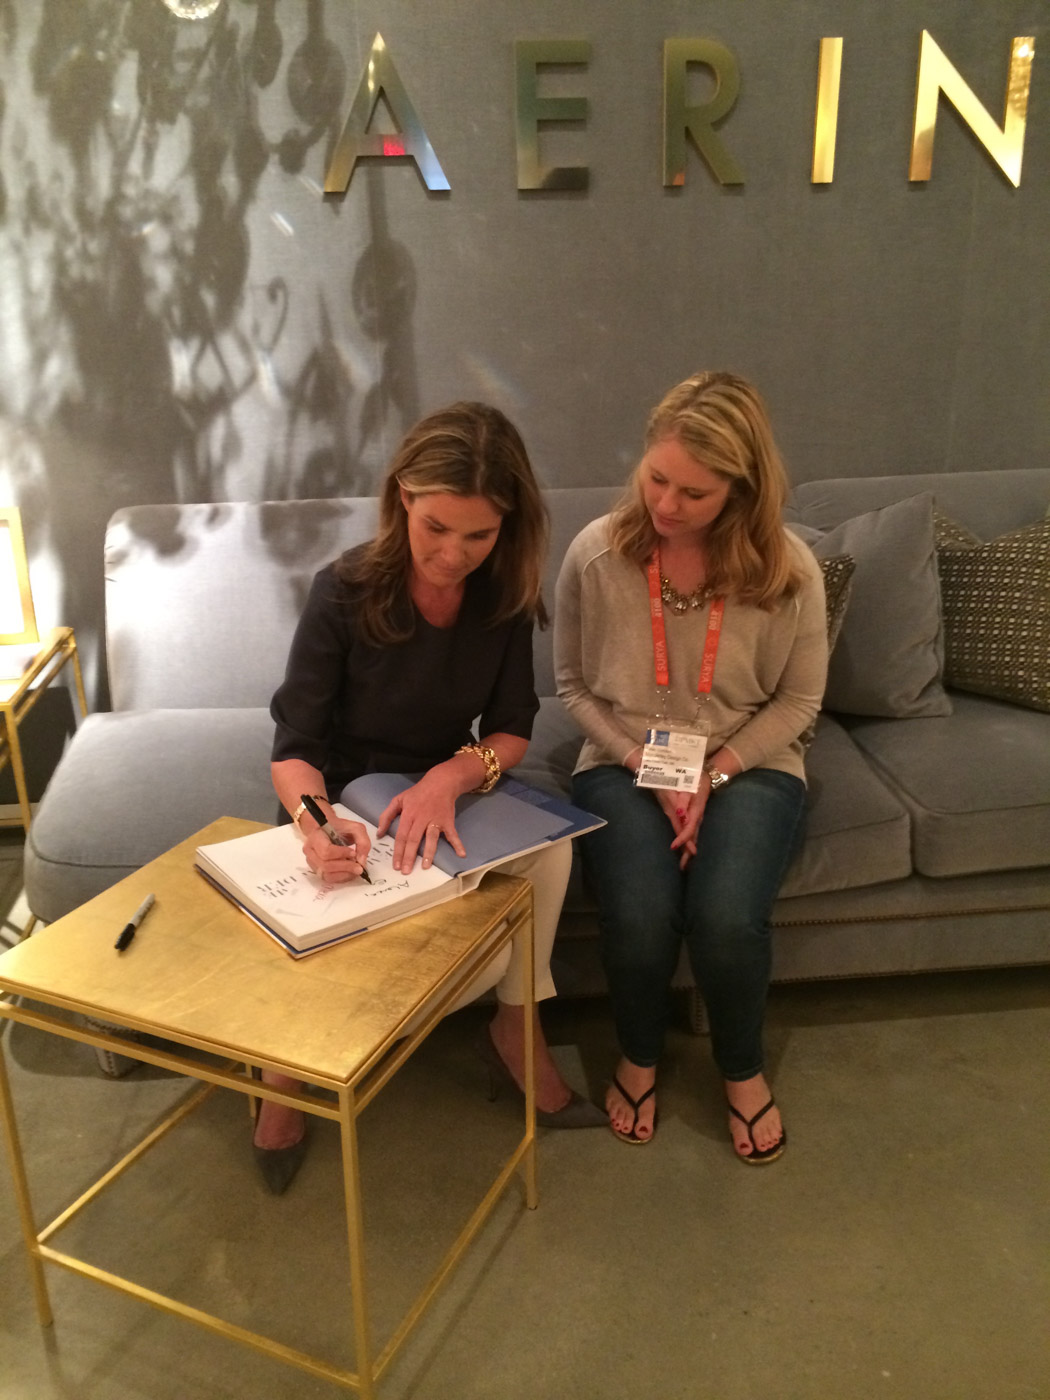 Just hanging out with Aerin Lauder, the lady who designs killer shoes, while I wear rubber flip flops because me feet are shredded tatters by this point! Oh, she is so beautiful and elegant.